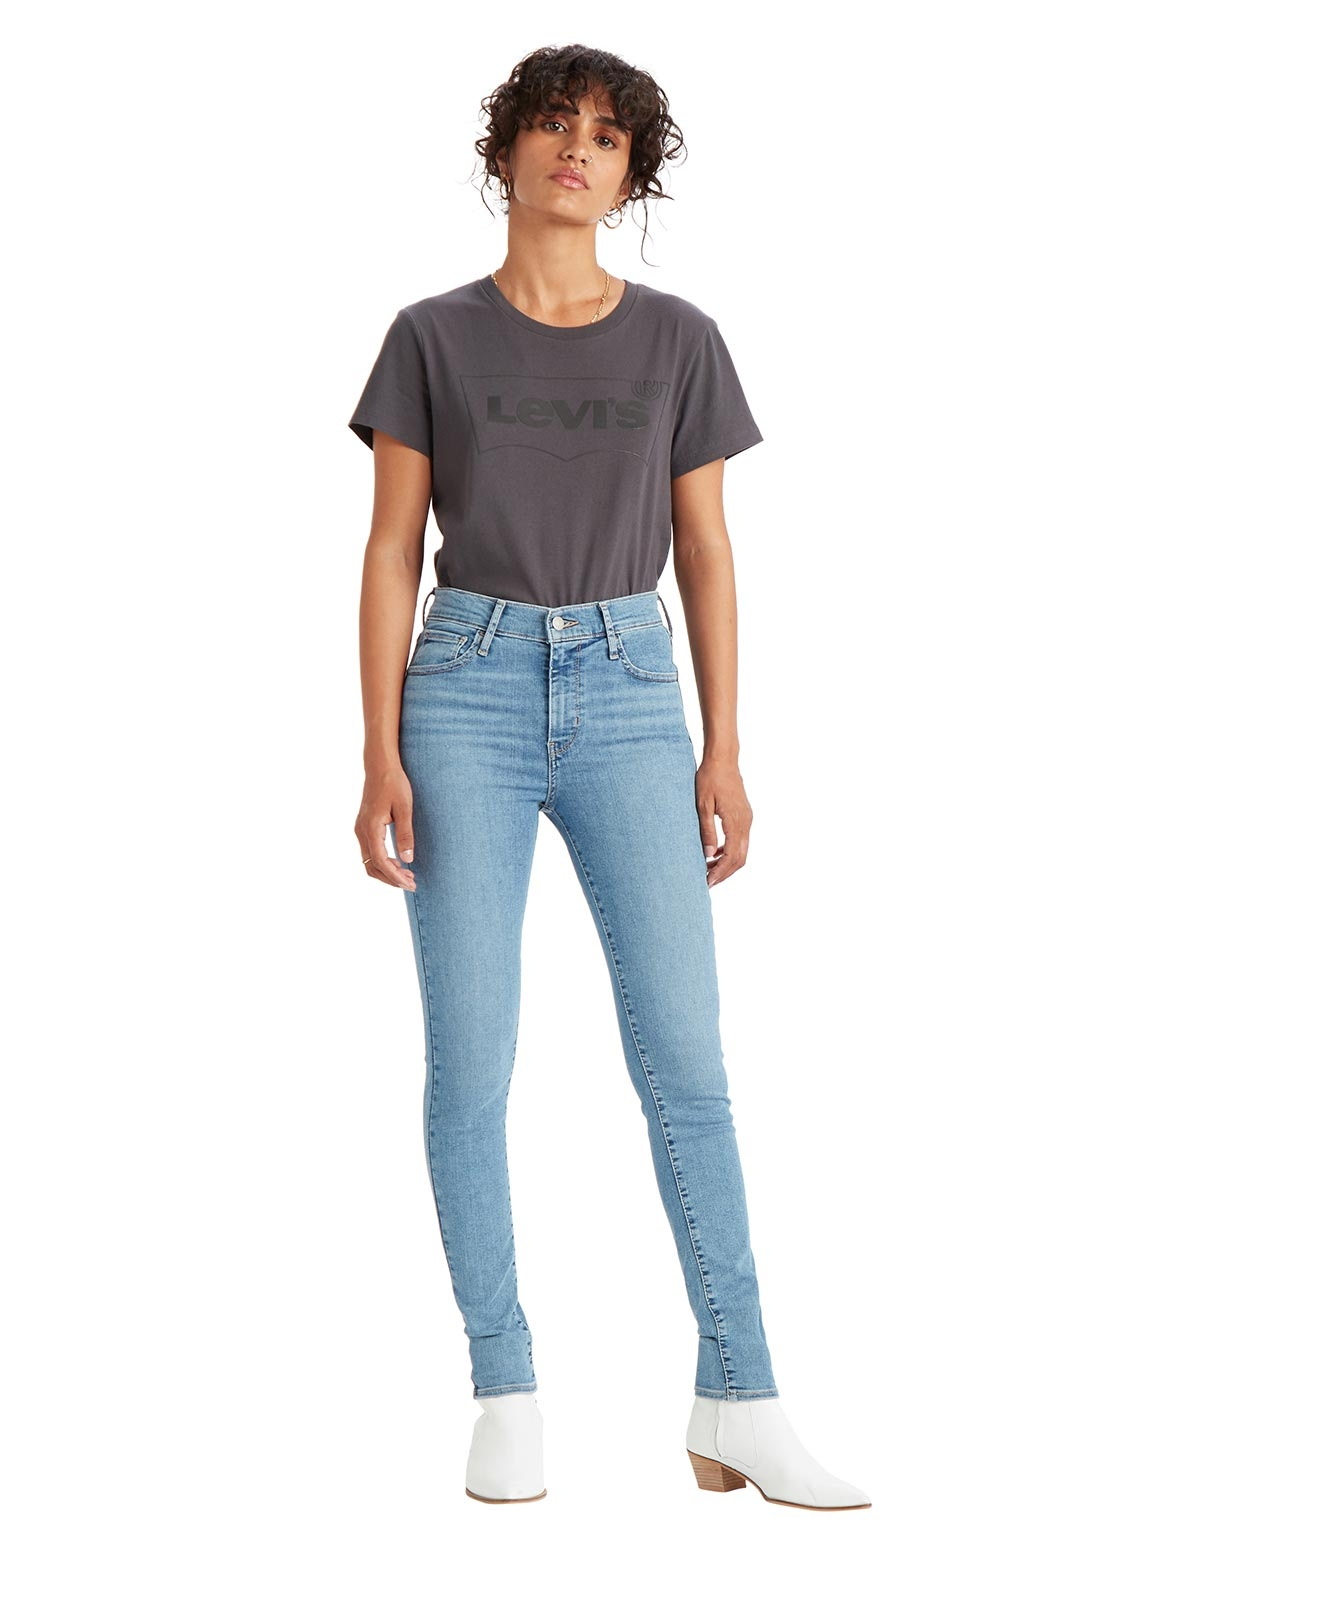 Hosen - Levis High Waisted Jeans 720 High Rise in Velocity Squared  - Onlineshop Jeans Meile